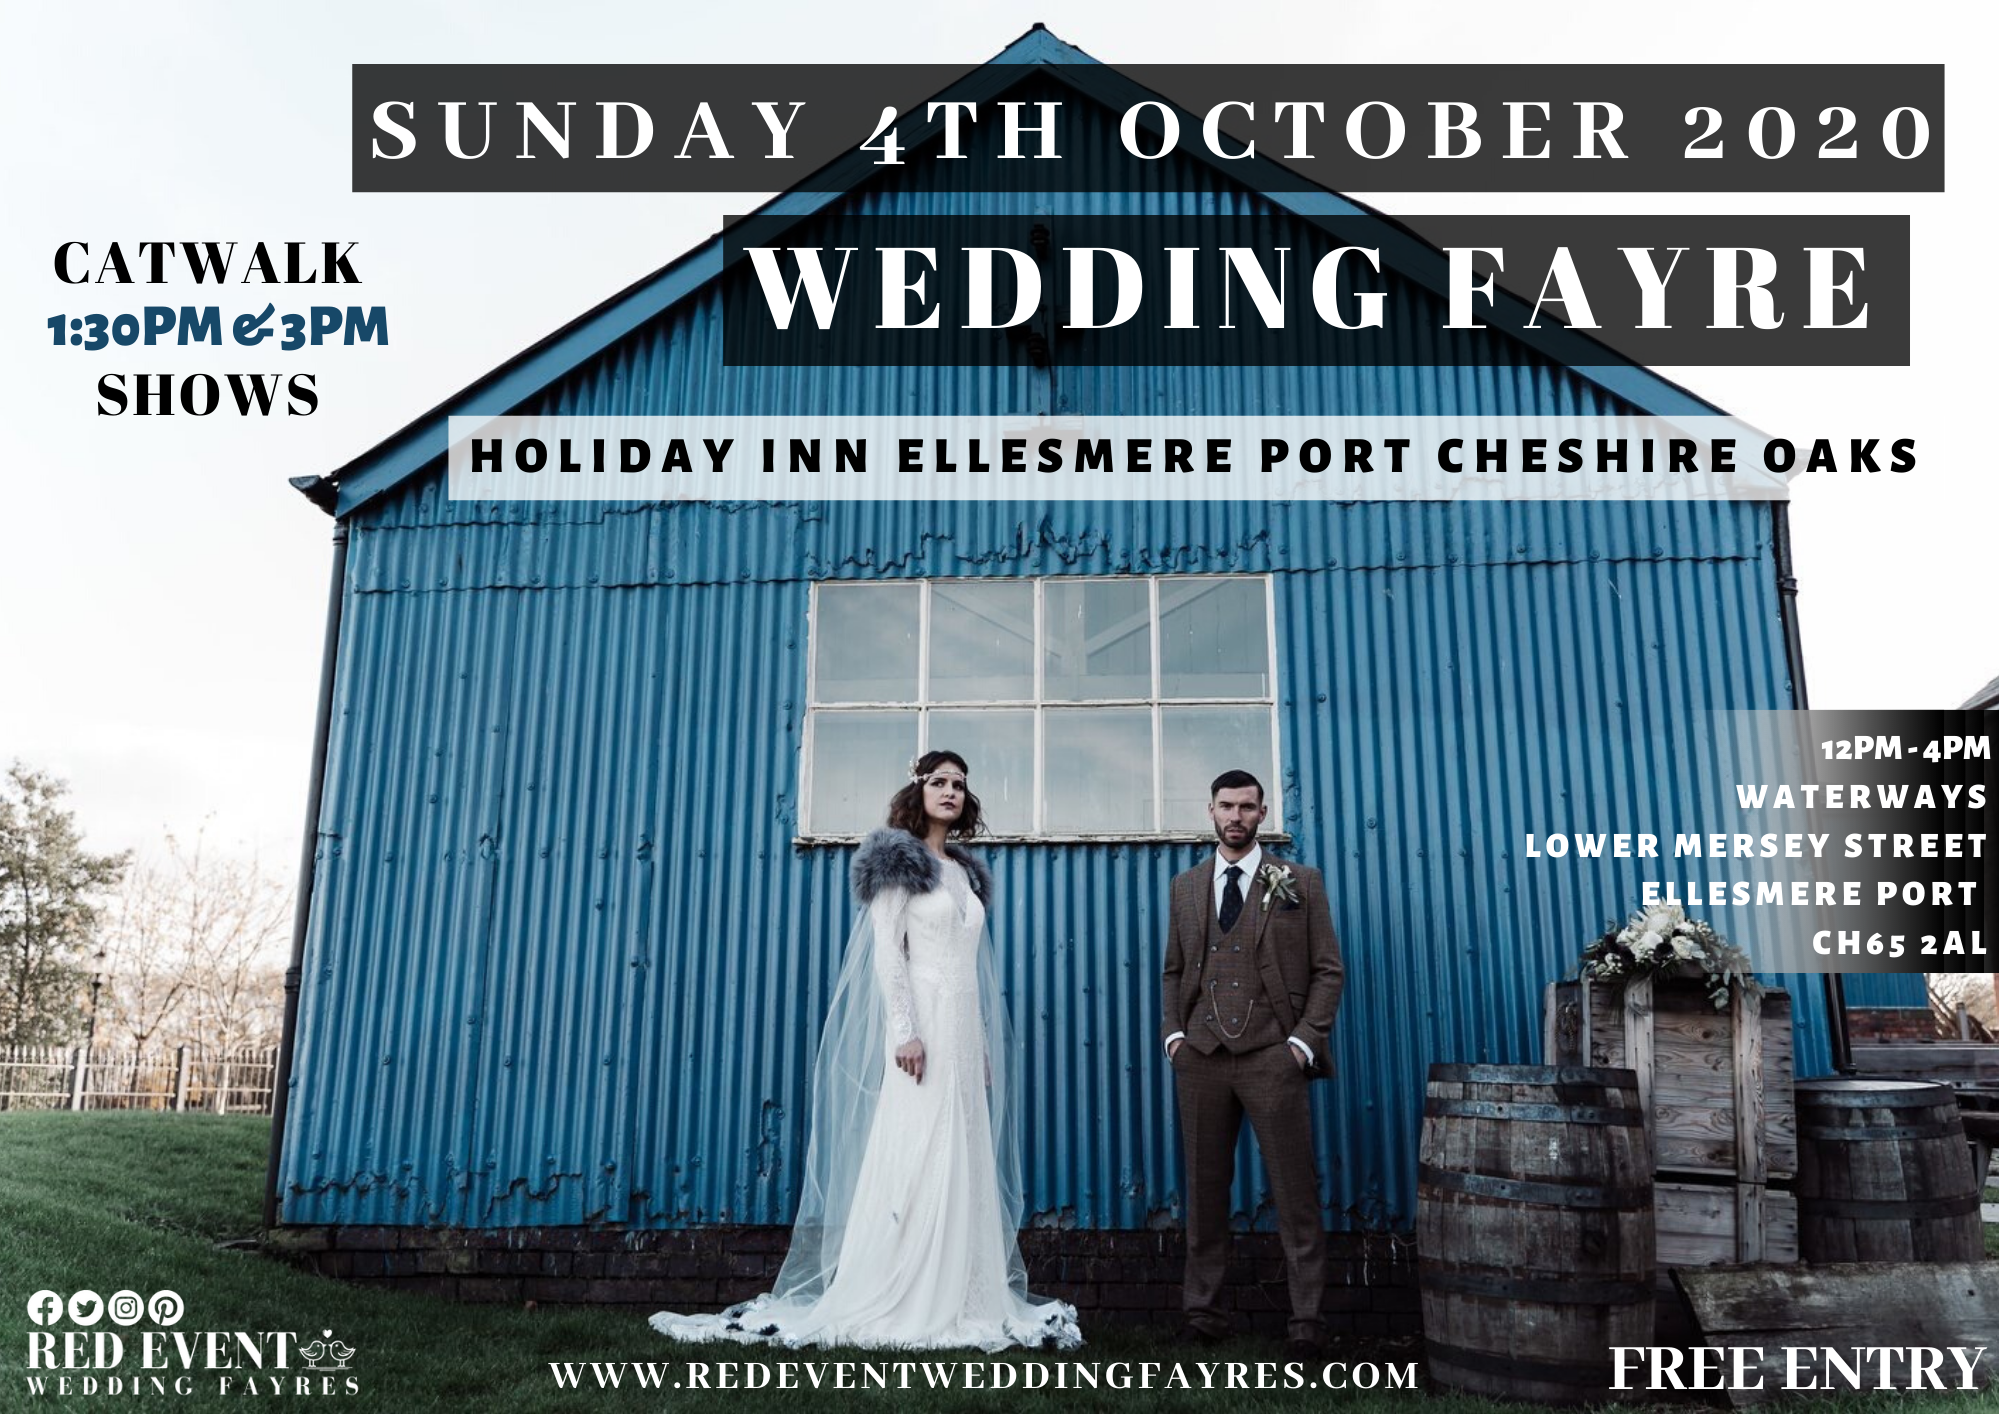 Wedding Fayre on the Canal at the Holiday Inn Ellesmere Port